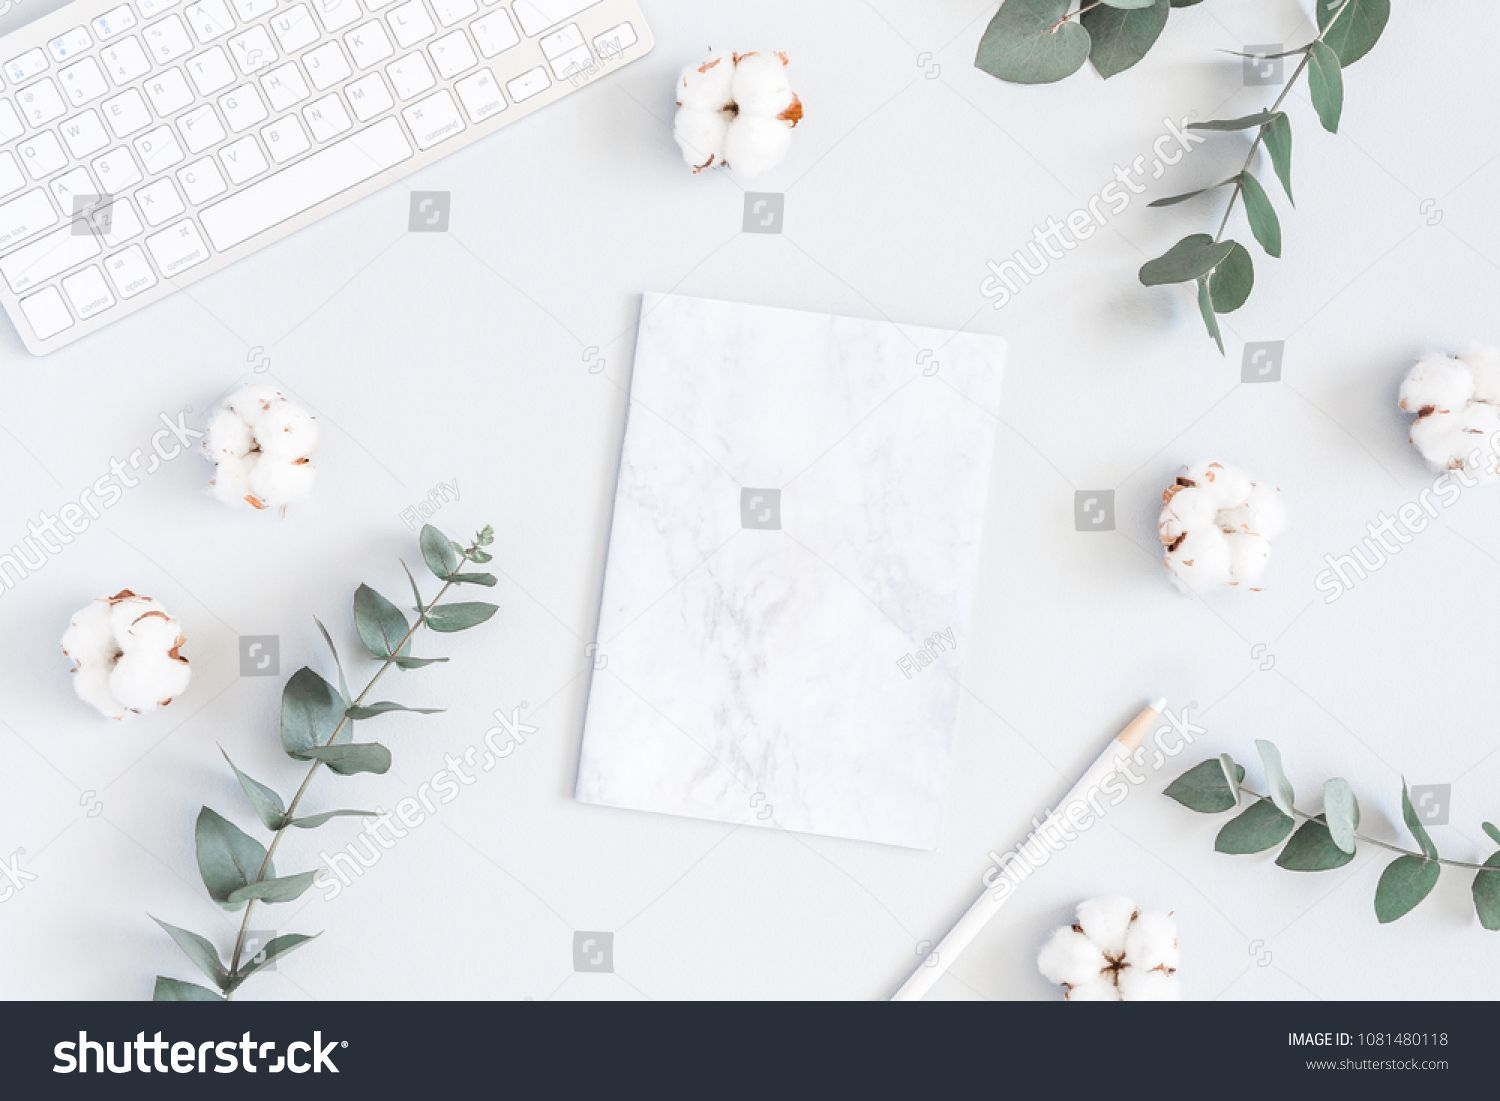 Workspace with computer, marble paper blank, cotton